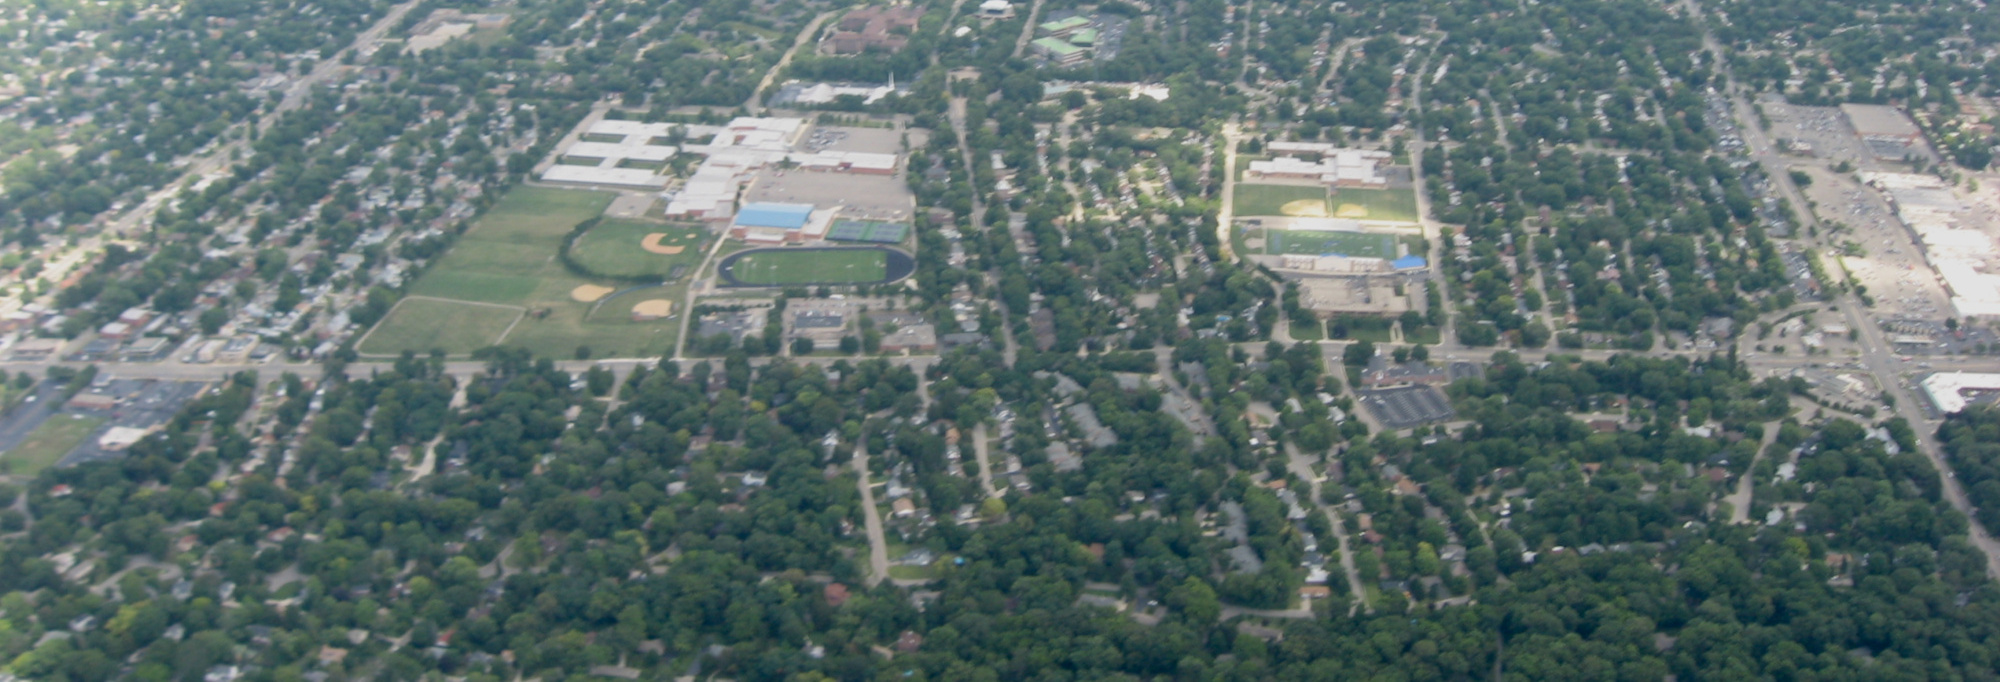 """Kettering, Ohio - A community to call """"Home"""" 